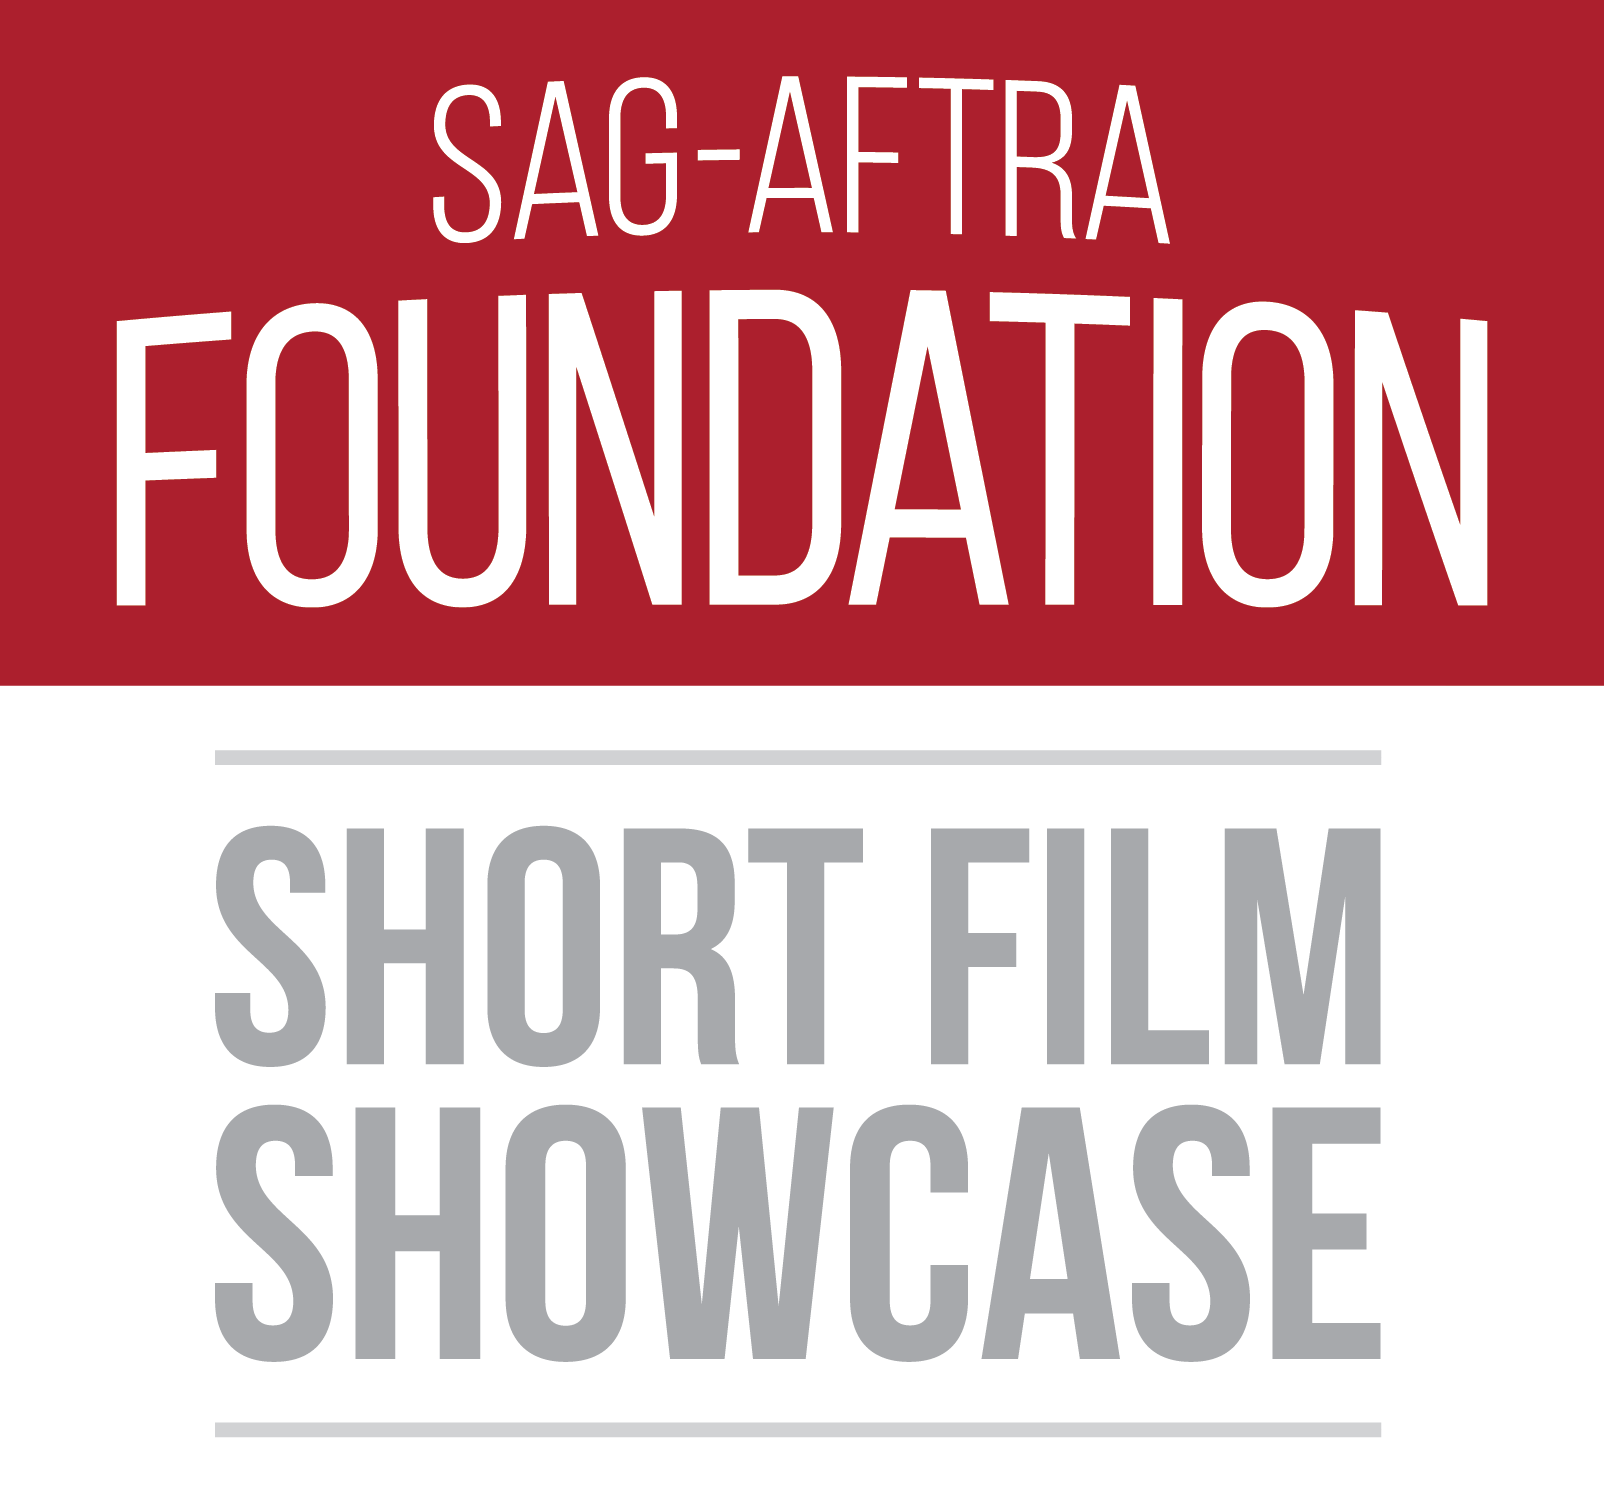 Saf shortfilmshowcase 01 square